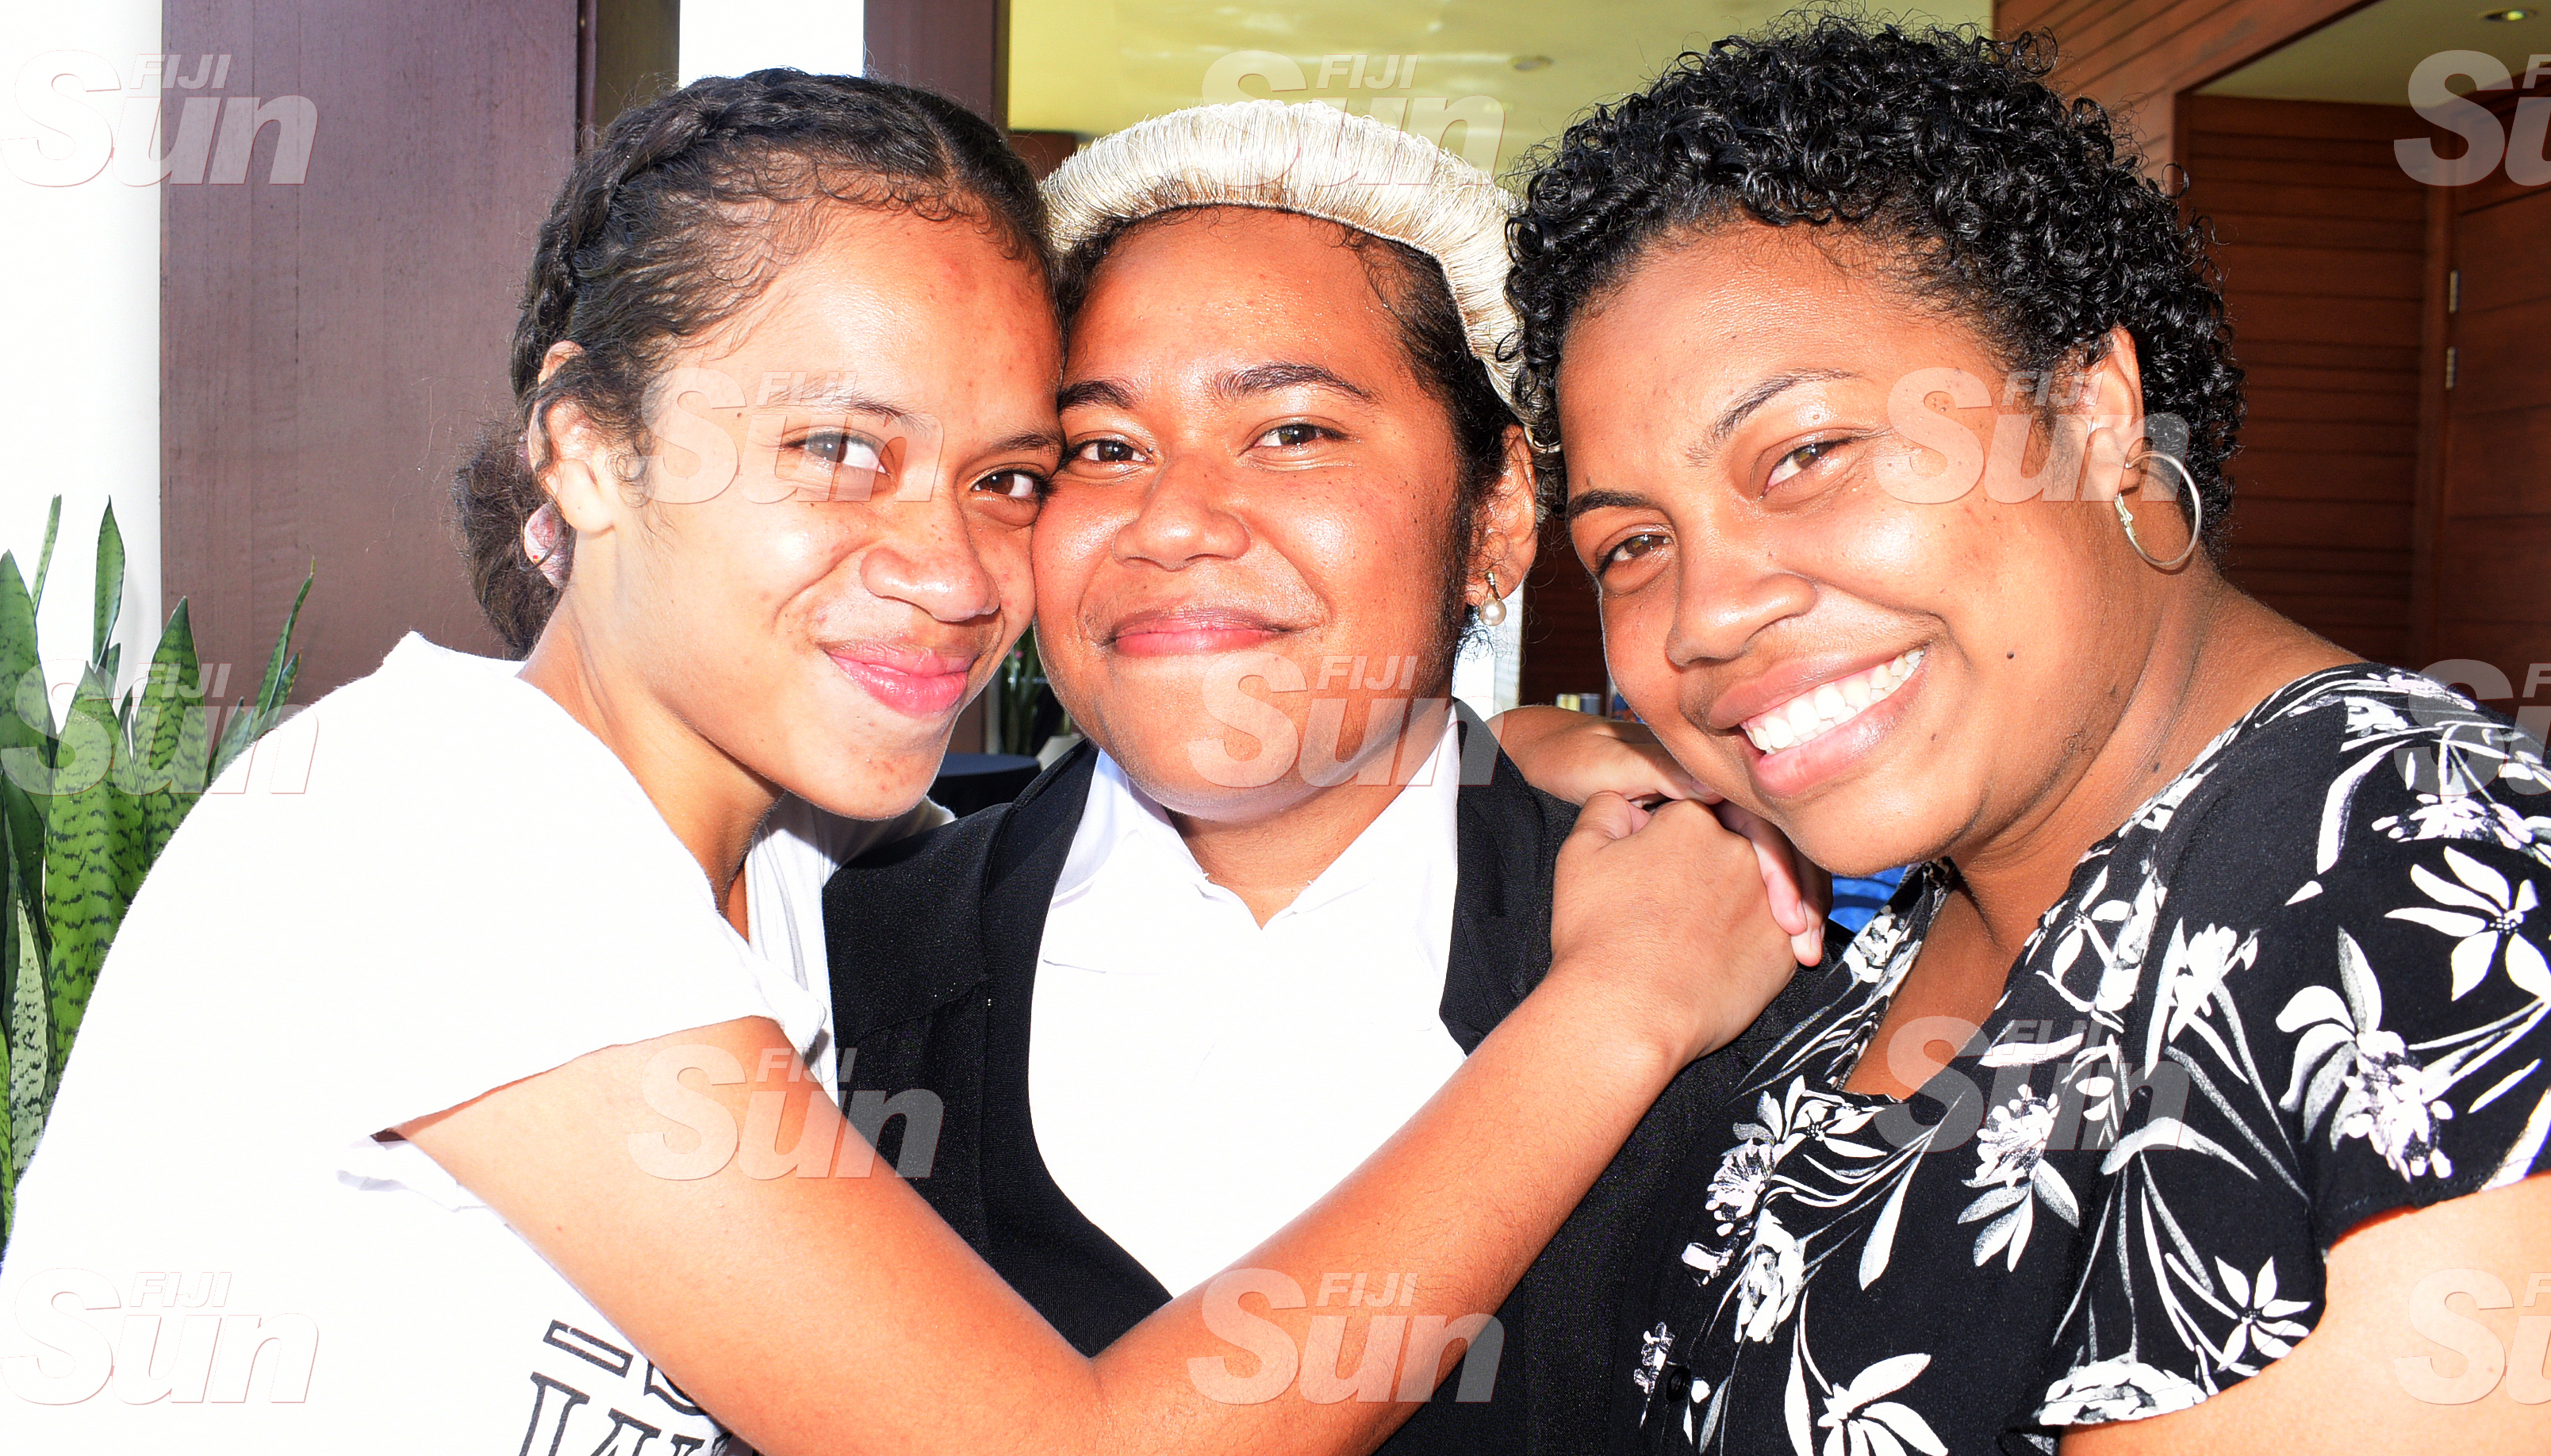 Akosita Nayacalevu (middle) with relatives Latileta Nayacalevu and Lavenia Raisele following her admission to the Bar on January 31, 2020. Photo: Ronald Kumar.